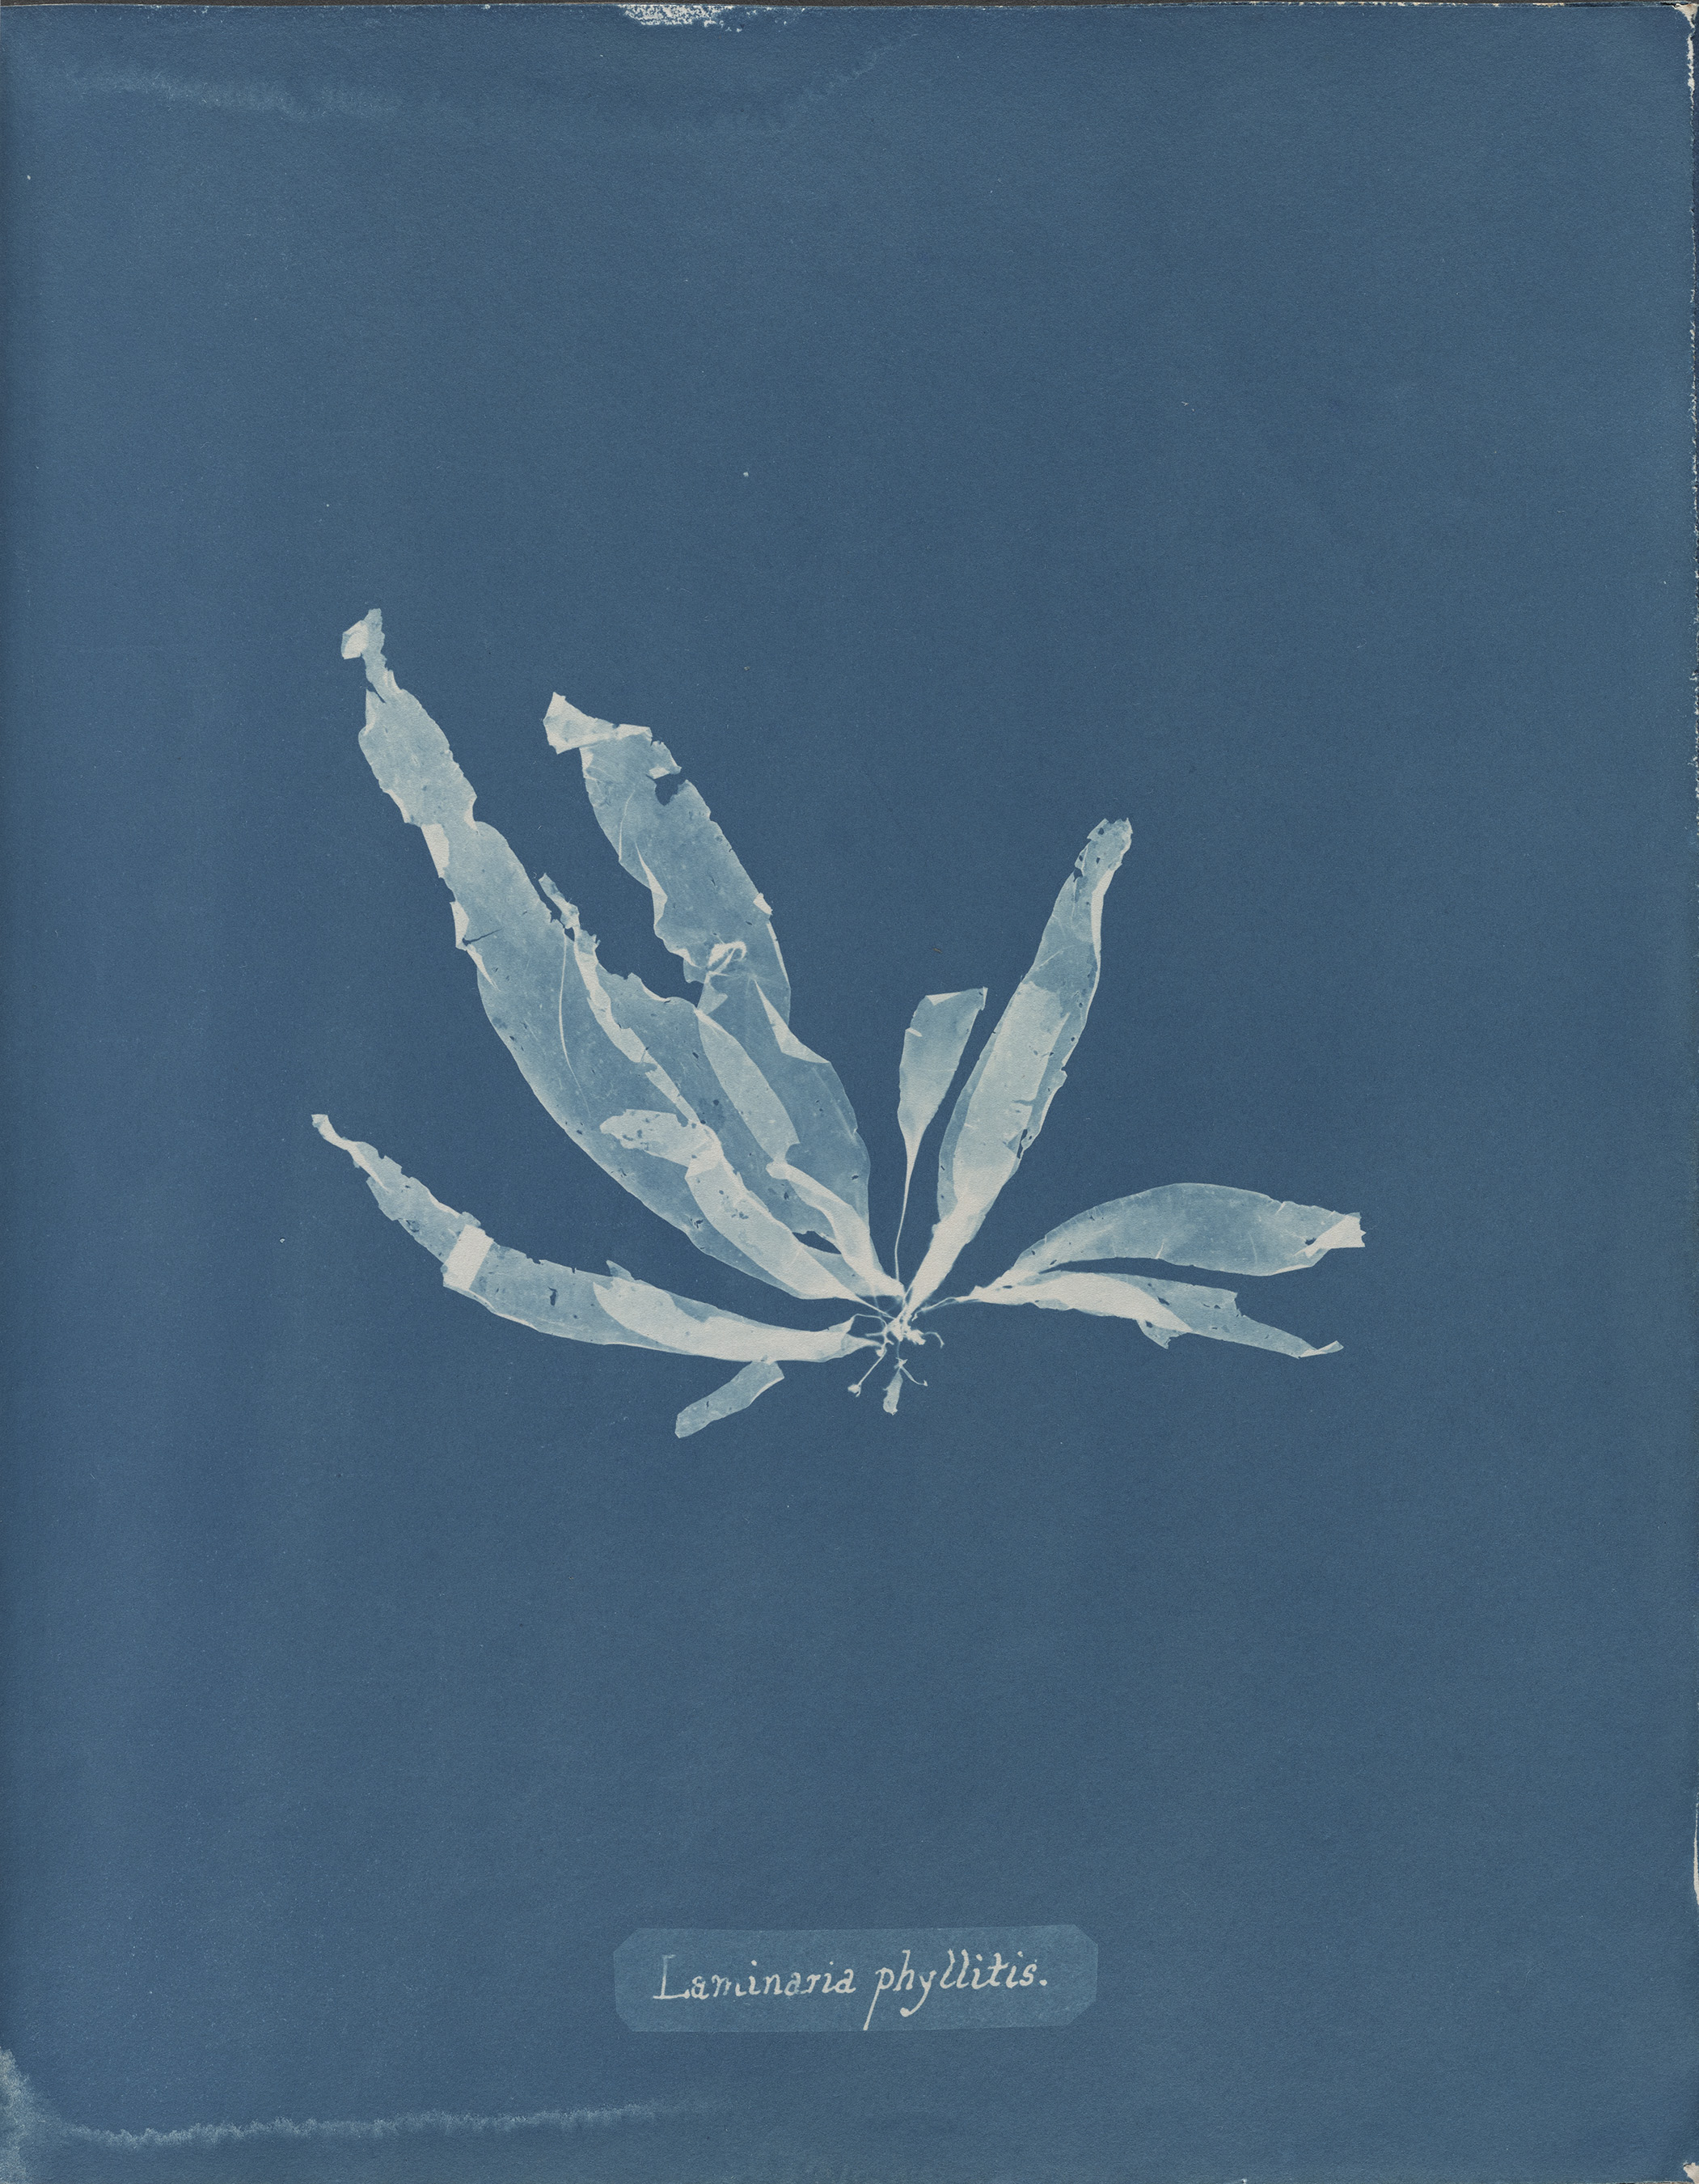 © Anna Atkins (1799–1871), Laminaria phyllitis, from Part V of Photographs of British Algae_ Cyanotype Impressions, 1844-1845, cyanotype. Spencer Collection, The New York Public Library, Astor, Lenox and Tilden Foundations.jpg